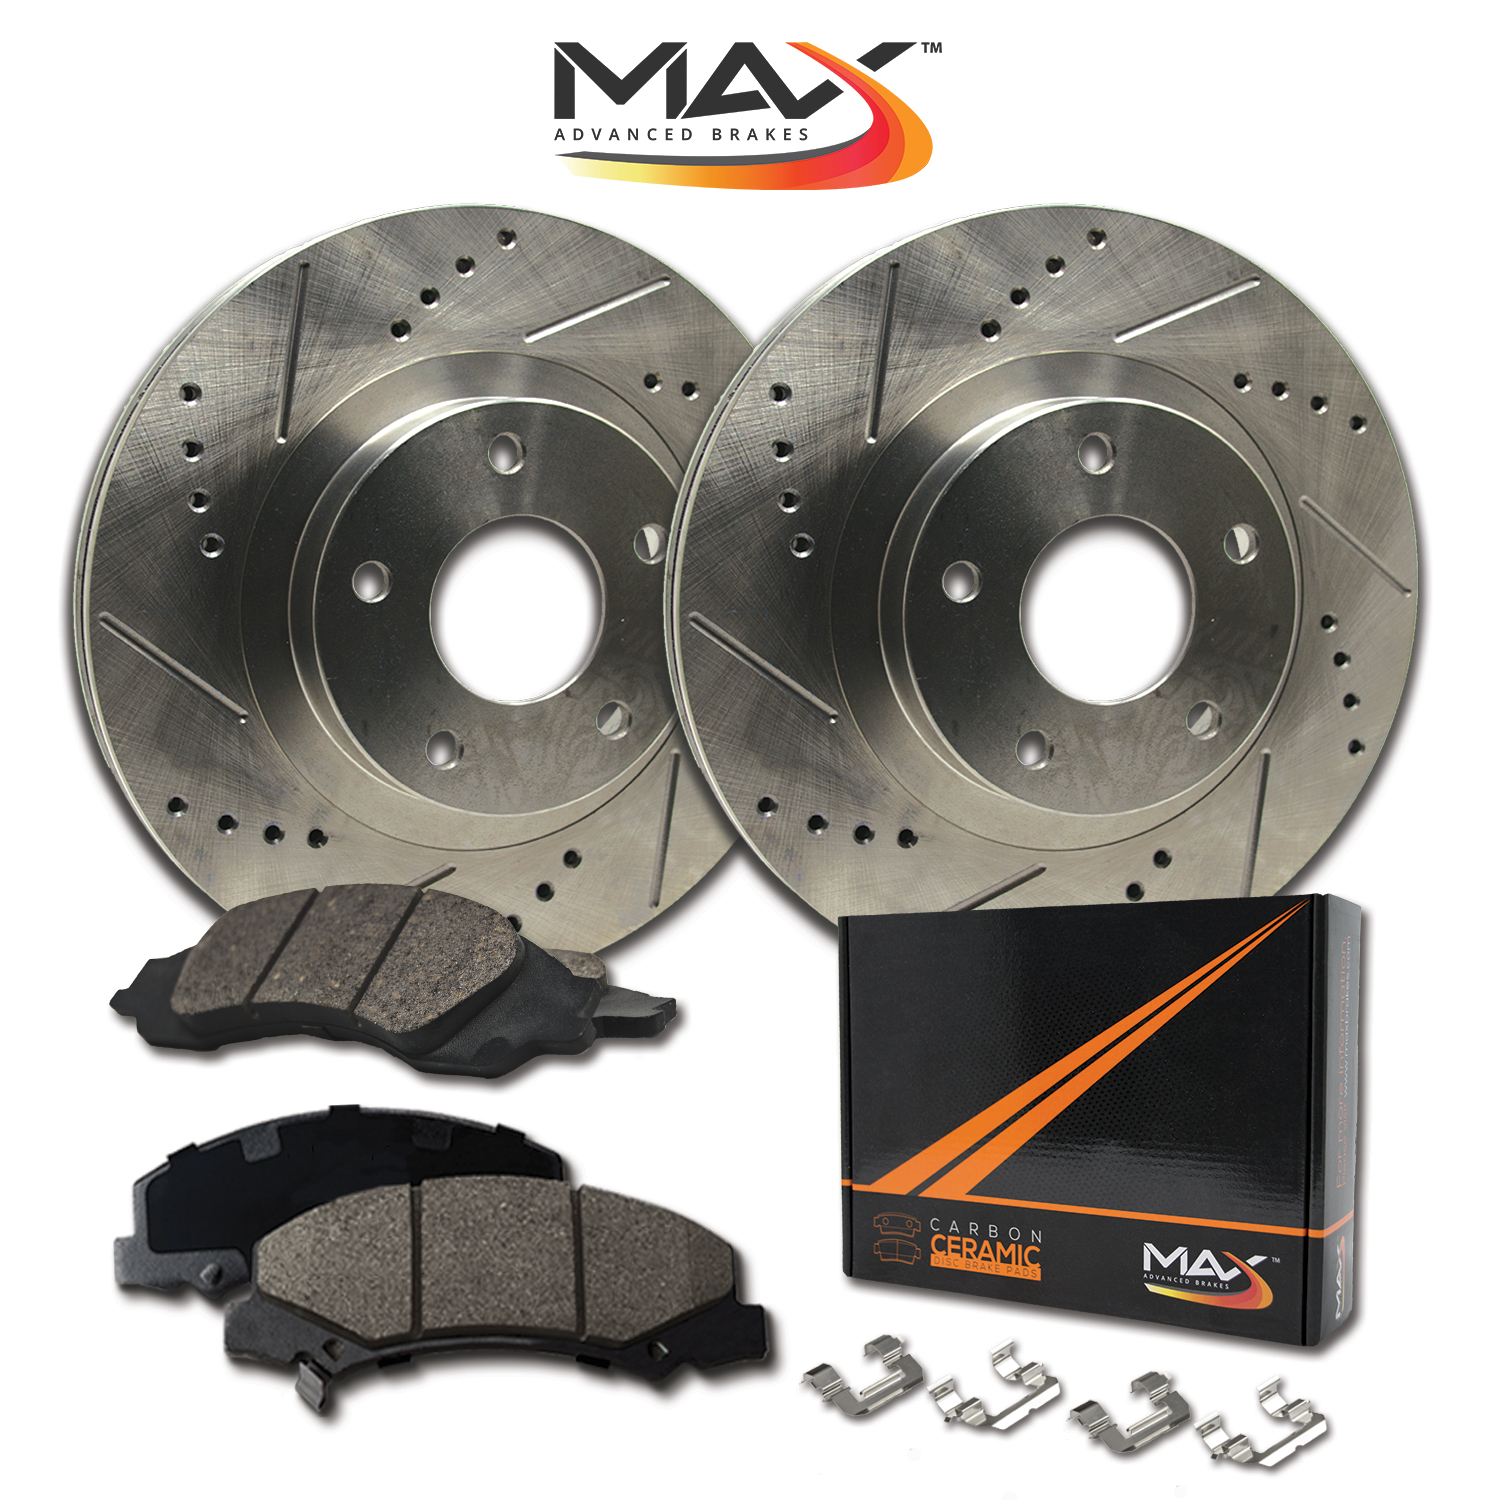 FRONT-KIT-Slotted-amp-Cross-Drilled-Rotors-with-Ceramic-Pads-amp-Hardware-Kit